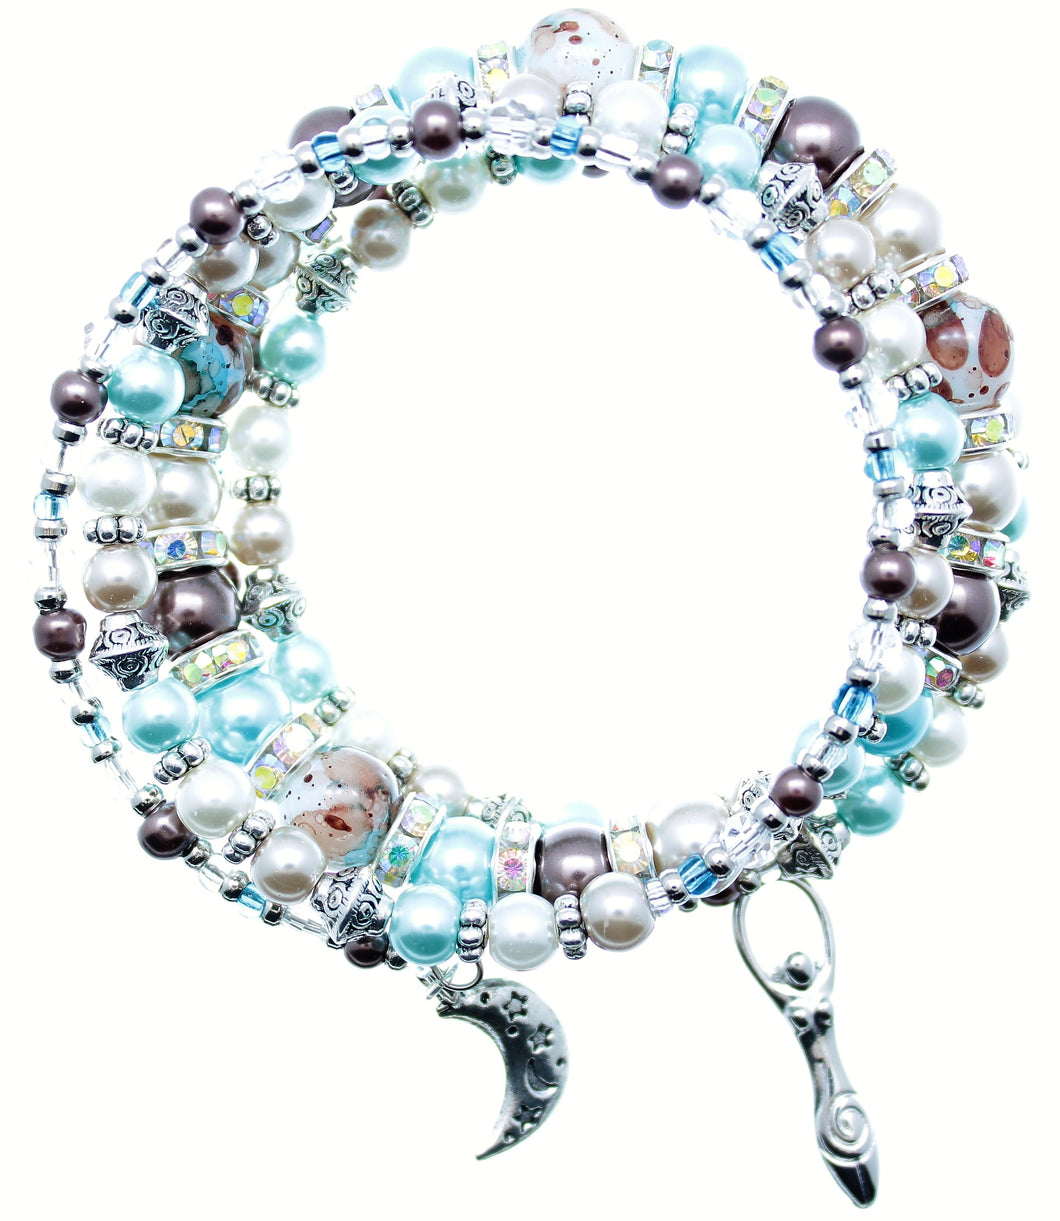 AVBeads Memory Wire Bracelet Beaded 5-Layer Wrap with Charms Moon Godd